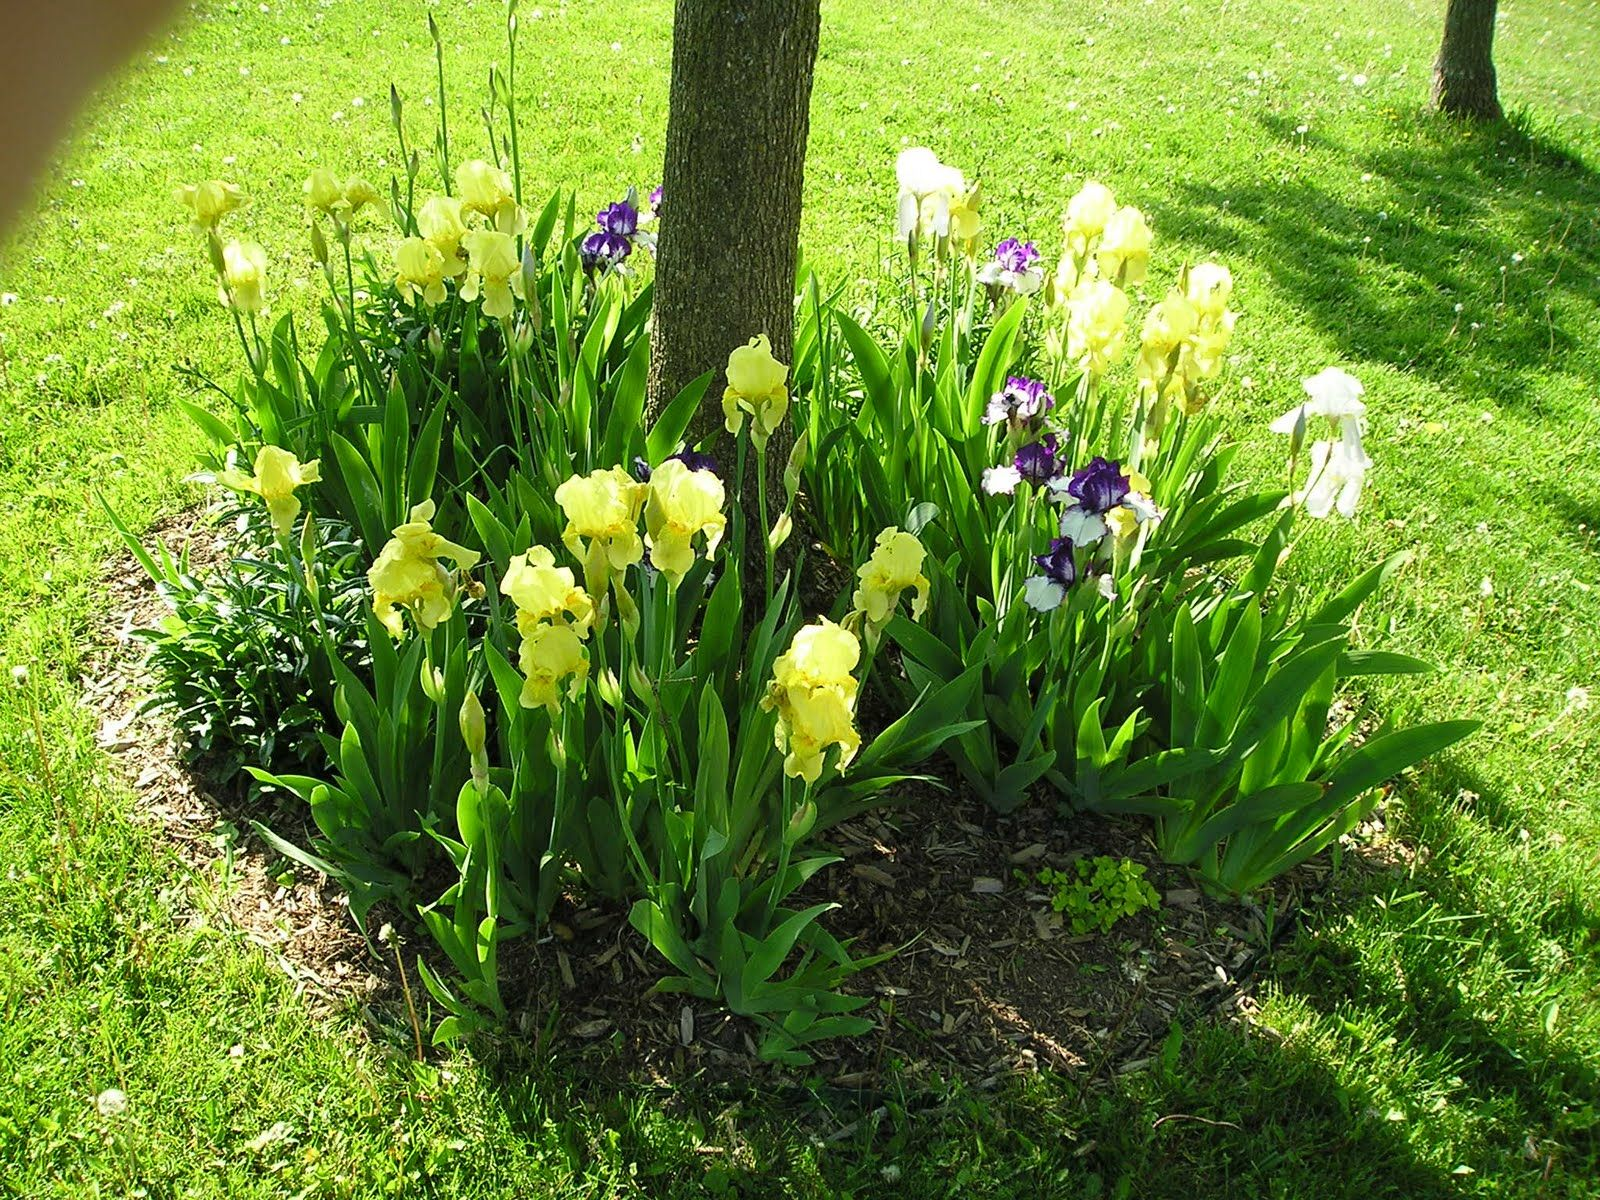 landscaping around trees landscape flowers in the base of trees flowers around trees - Flower Garden Ideas Around Tree